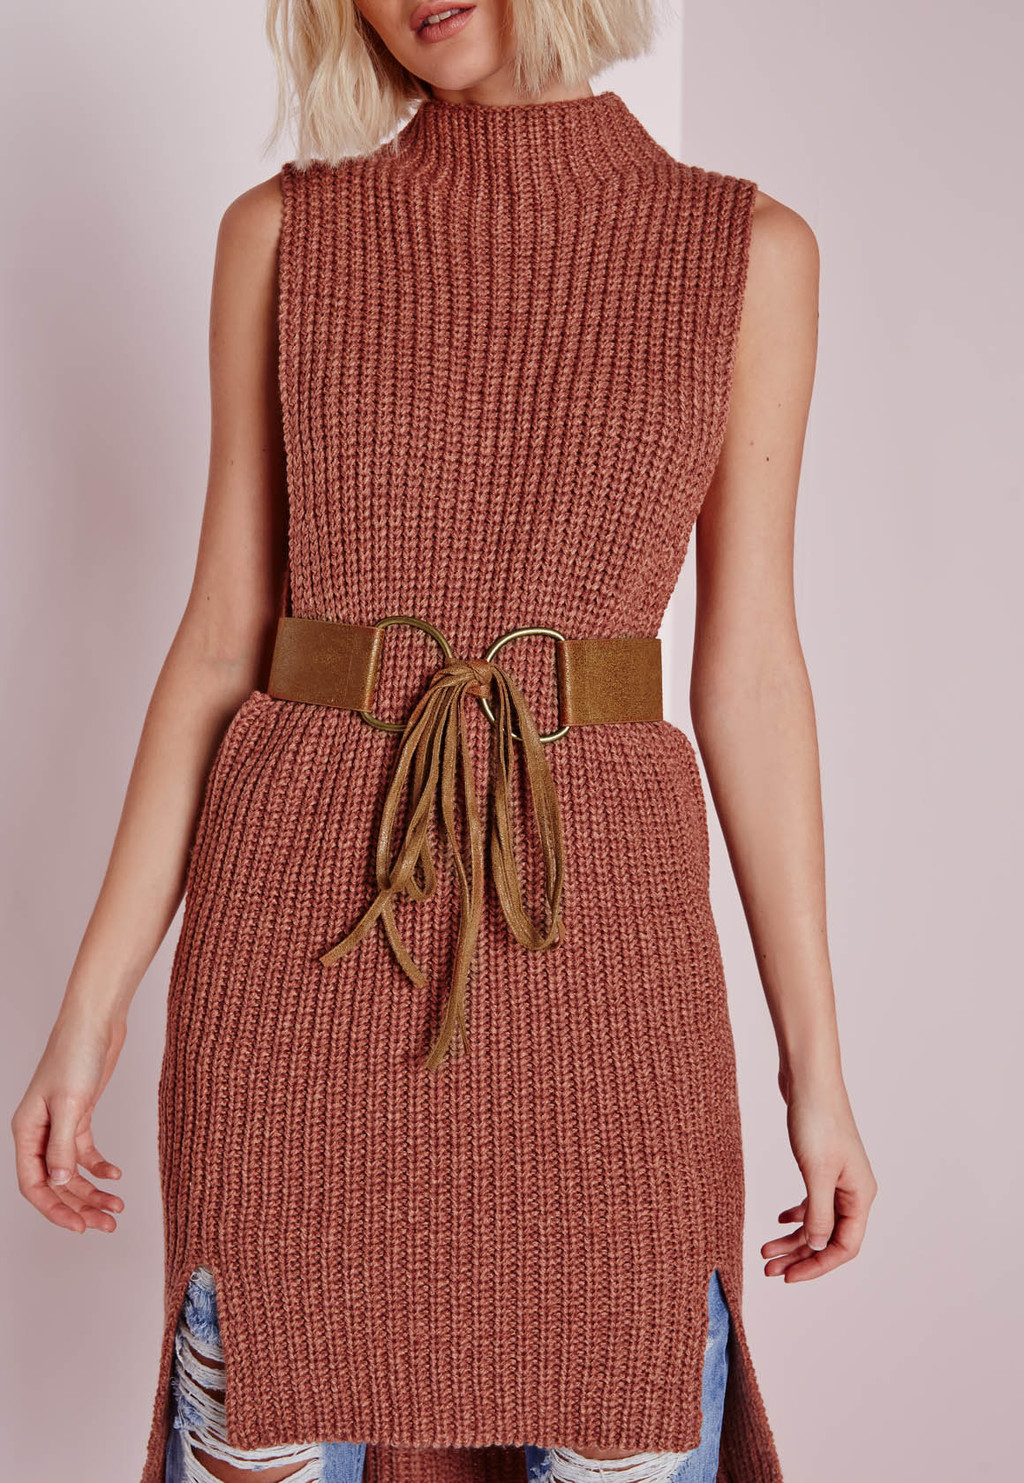 Double Ring Tie Belt Tan, Brown - predominant colour: tan; occasions: casual, creative work; type of pattern: standard; style: classic; size: oversized; worn on: waist; material: fabric; pattern: plain; finish: plain; season: a/w 2015